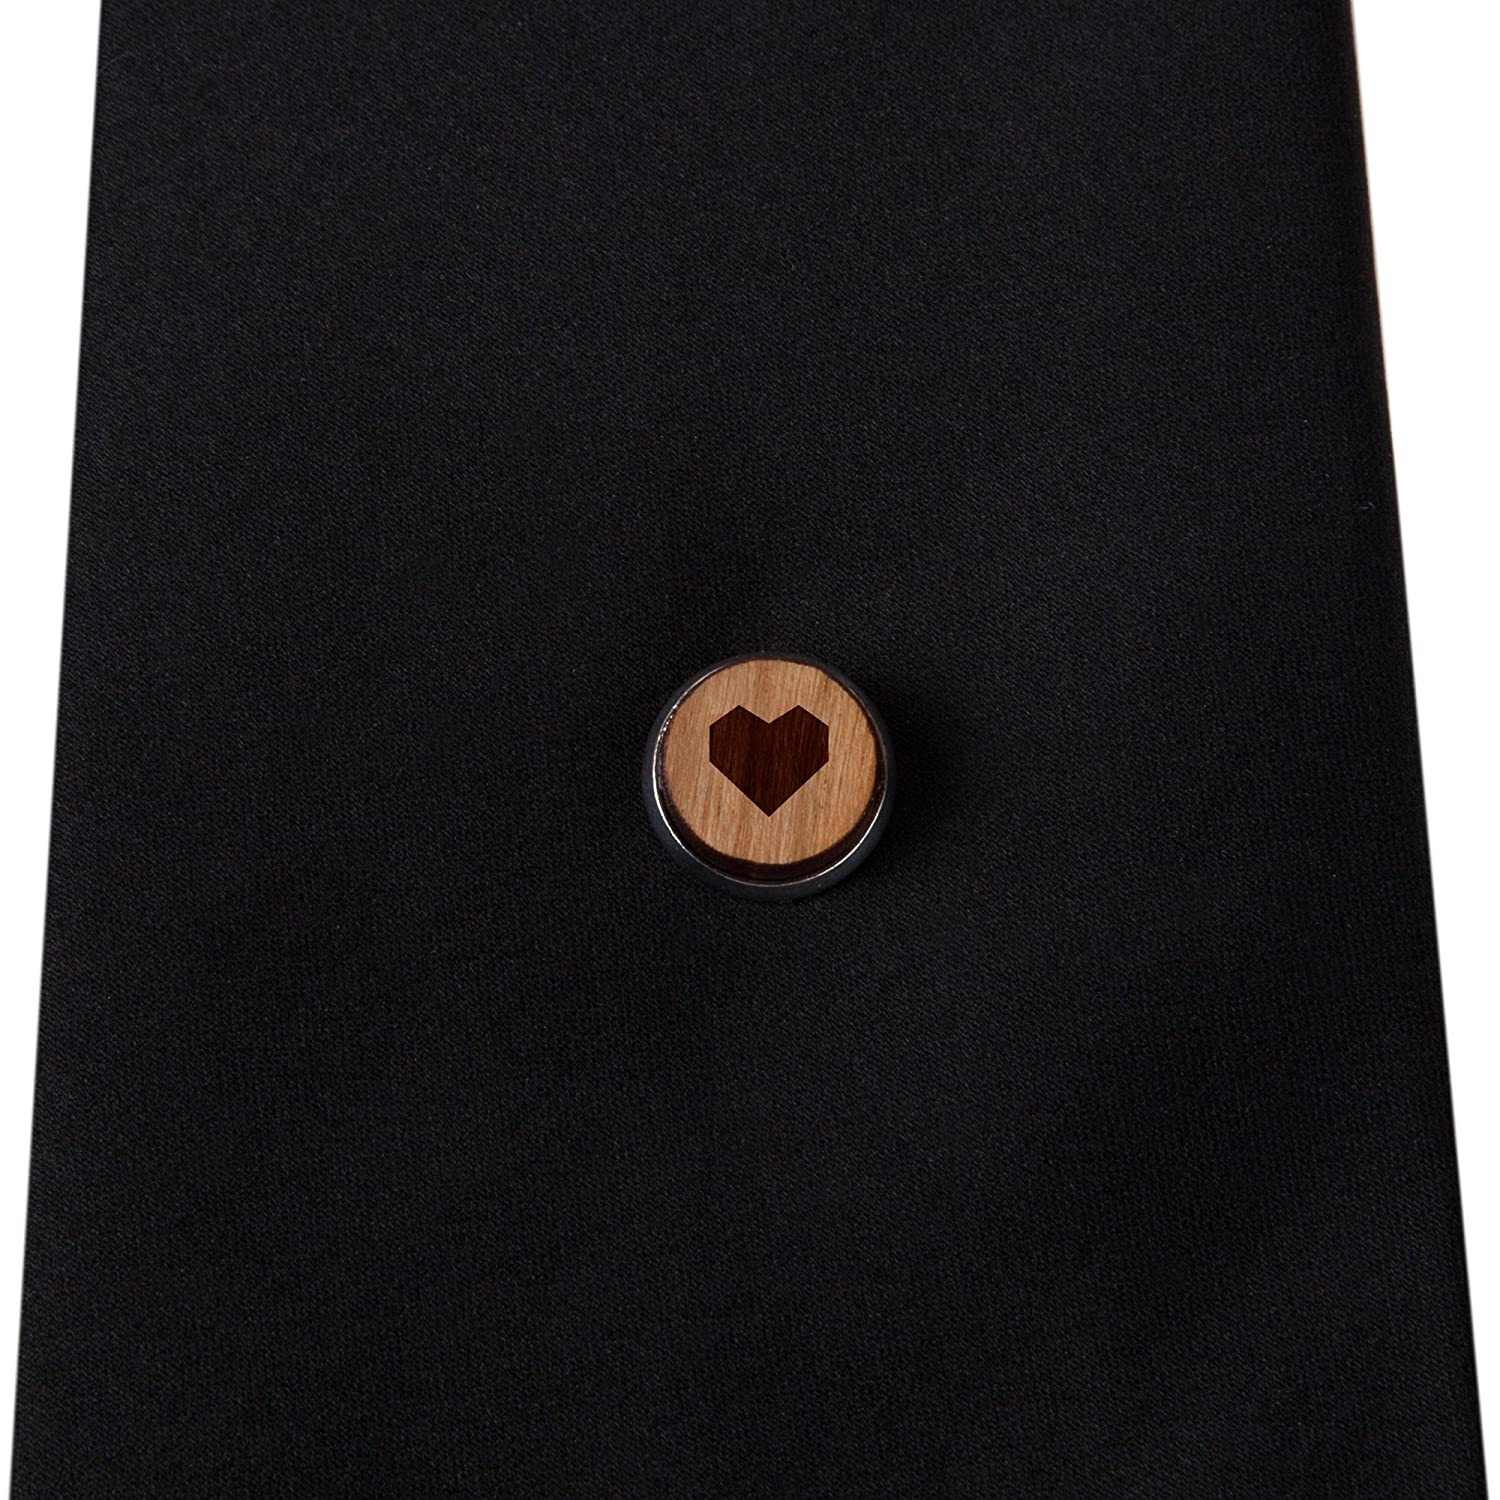 Origami Heart Stylish Cherry Wood Tie Tack 12Mm Simple Tie Clip with Laser Engraved Design Engraved Tie Tack Gift